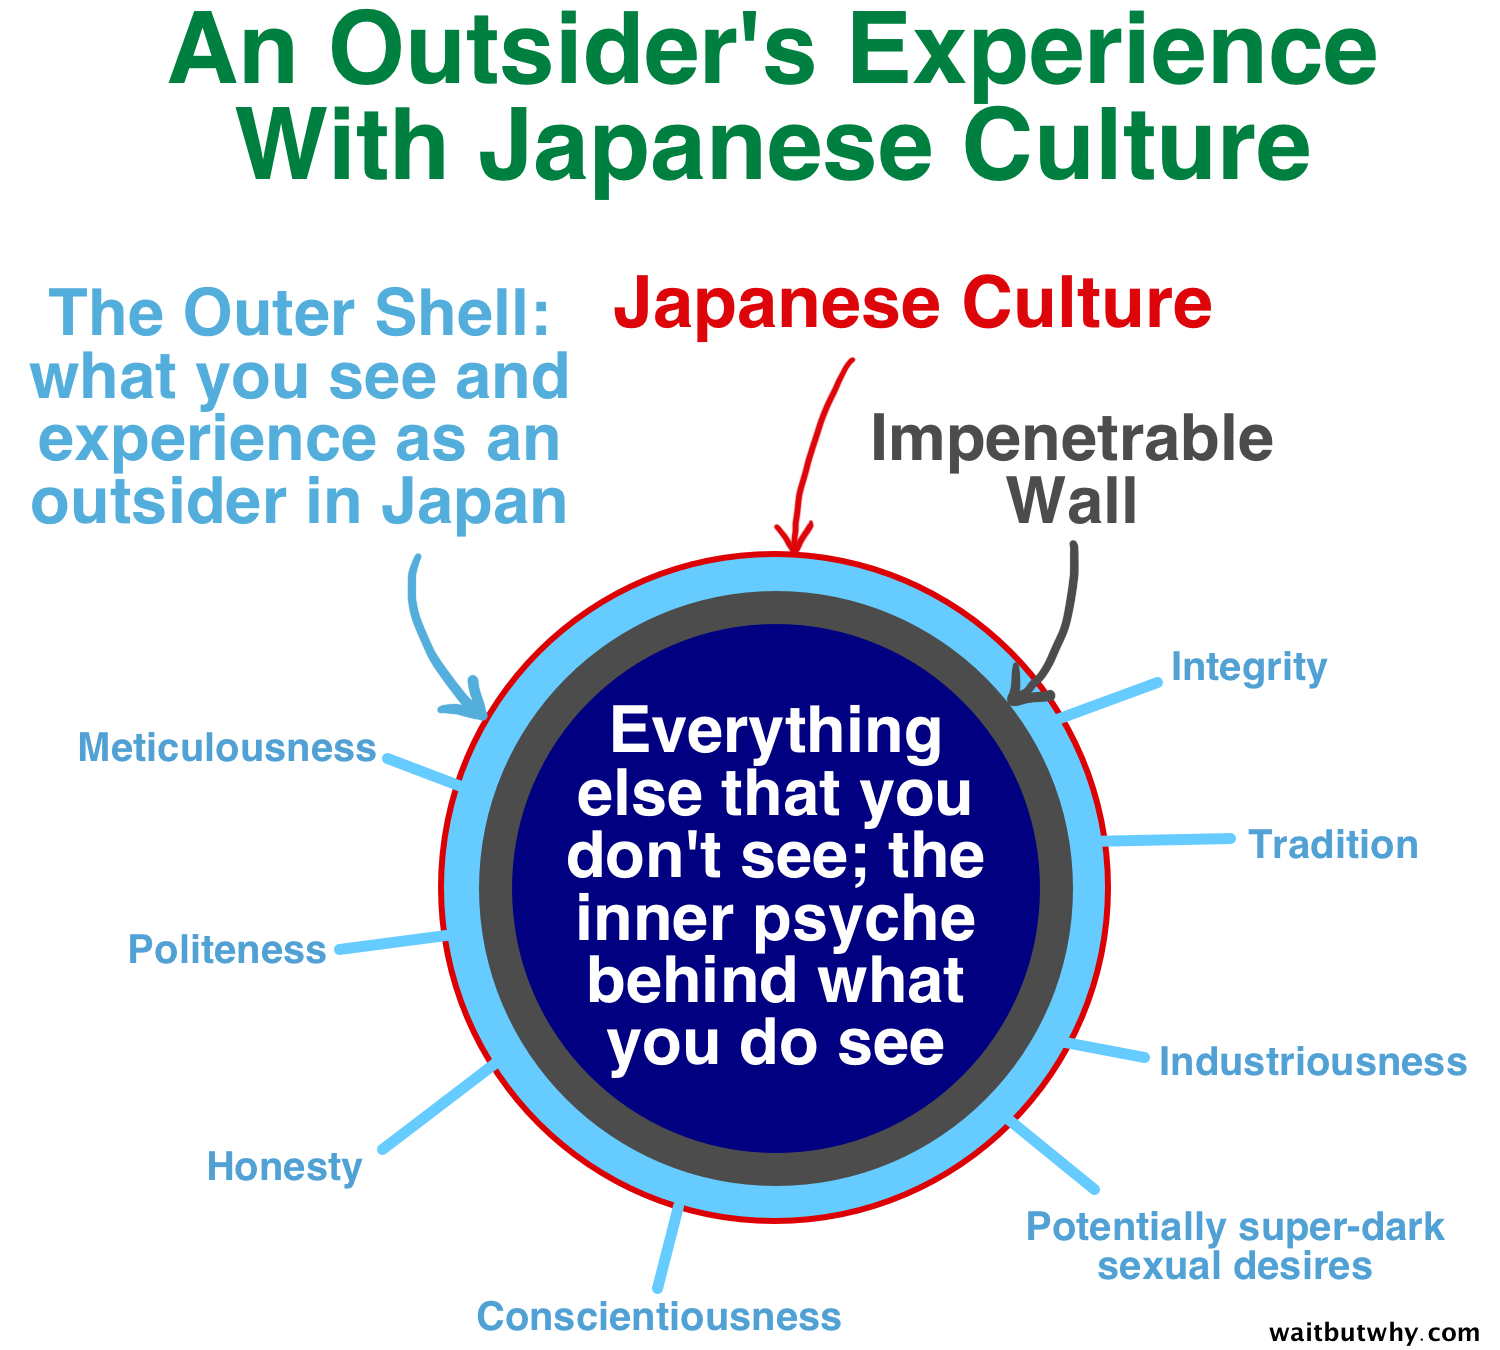 japanese culture essay introduction Essay introduction write japanese culture posted on october 15, 2018 october 15, 2018 by  e learning essay videos download literary argument essay example research for argumentative essay judicial killings writing 800 word essay topics, love essay about him letters essay on time capsules capsulecom dissertation in risk management.